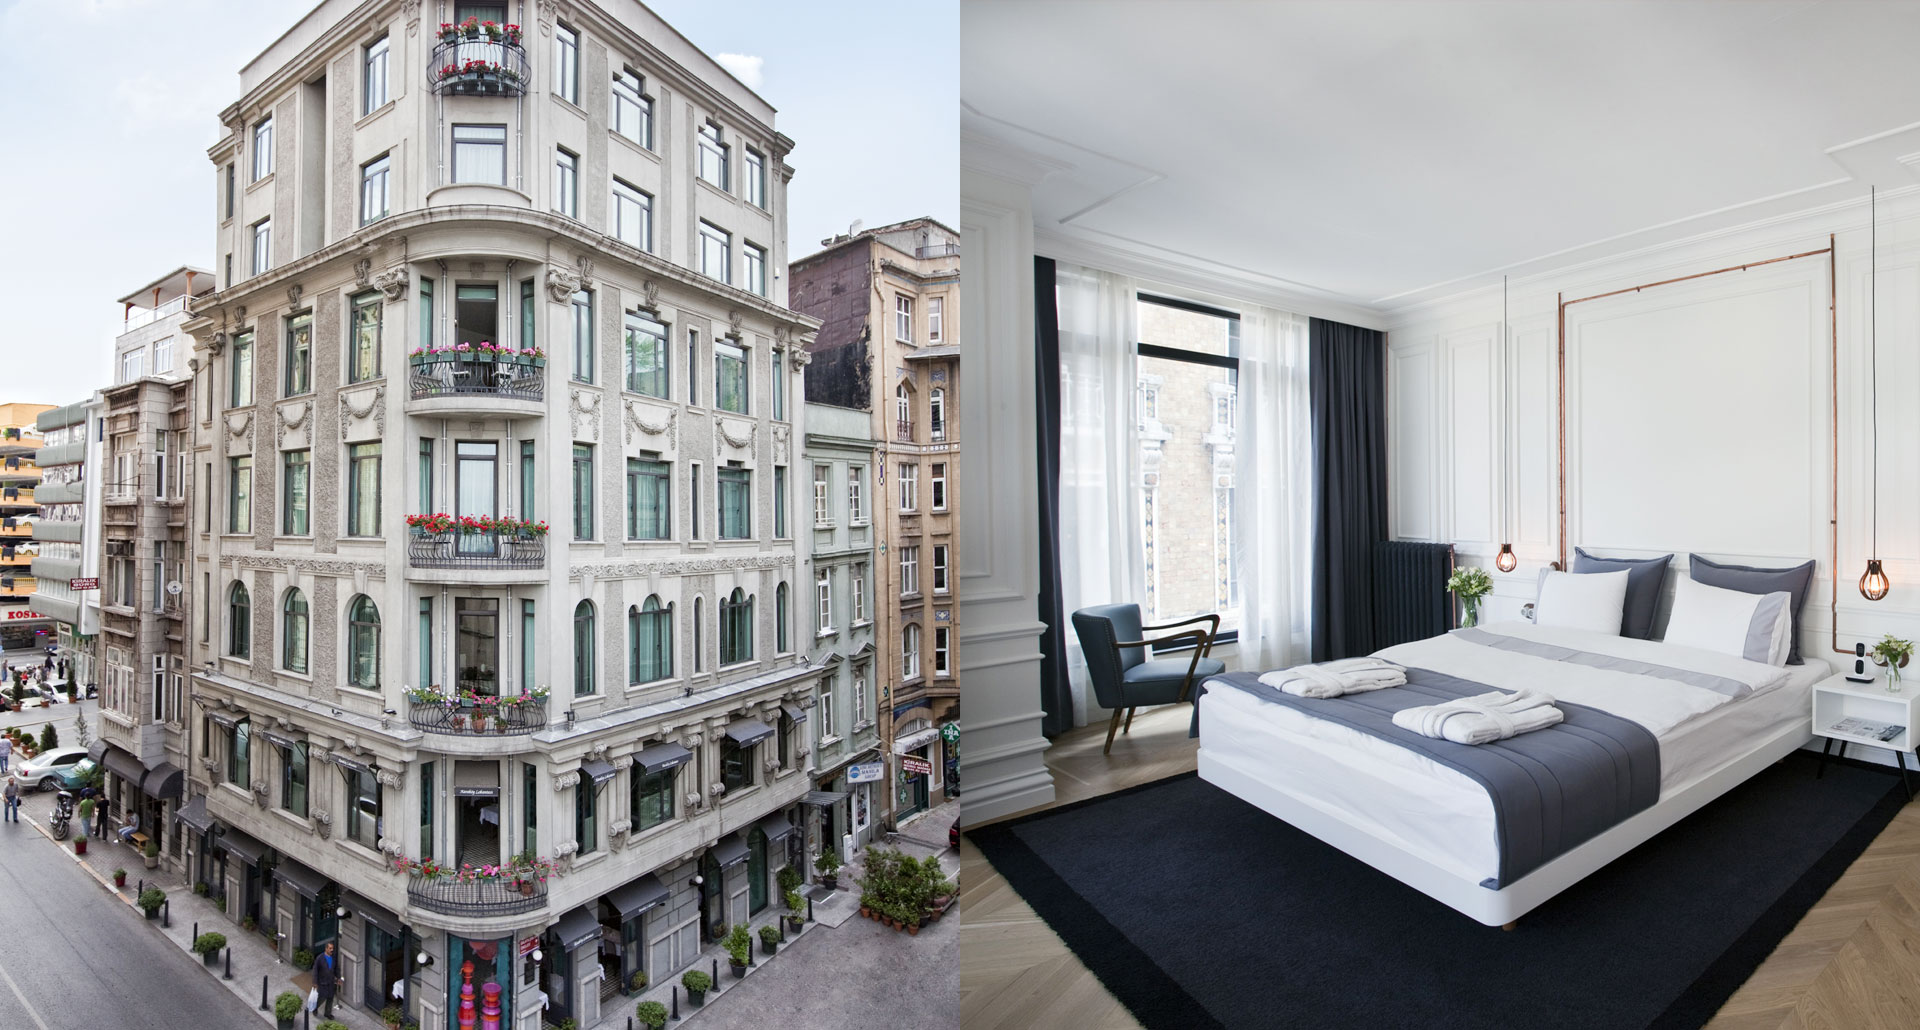 Karakoy Rooms boutique hotel in Istanbul, Turkey